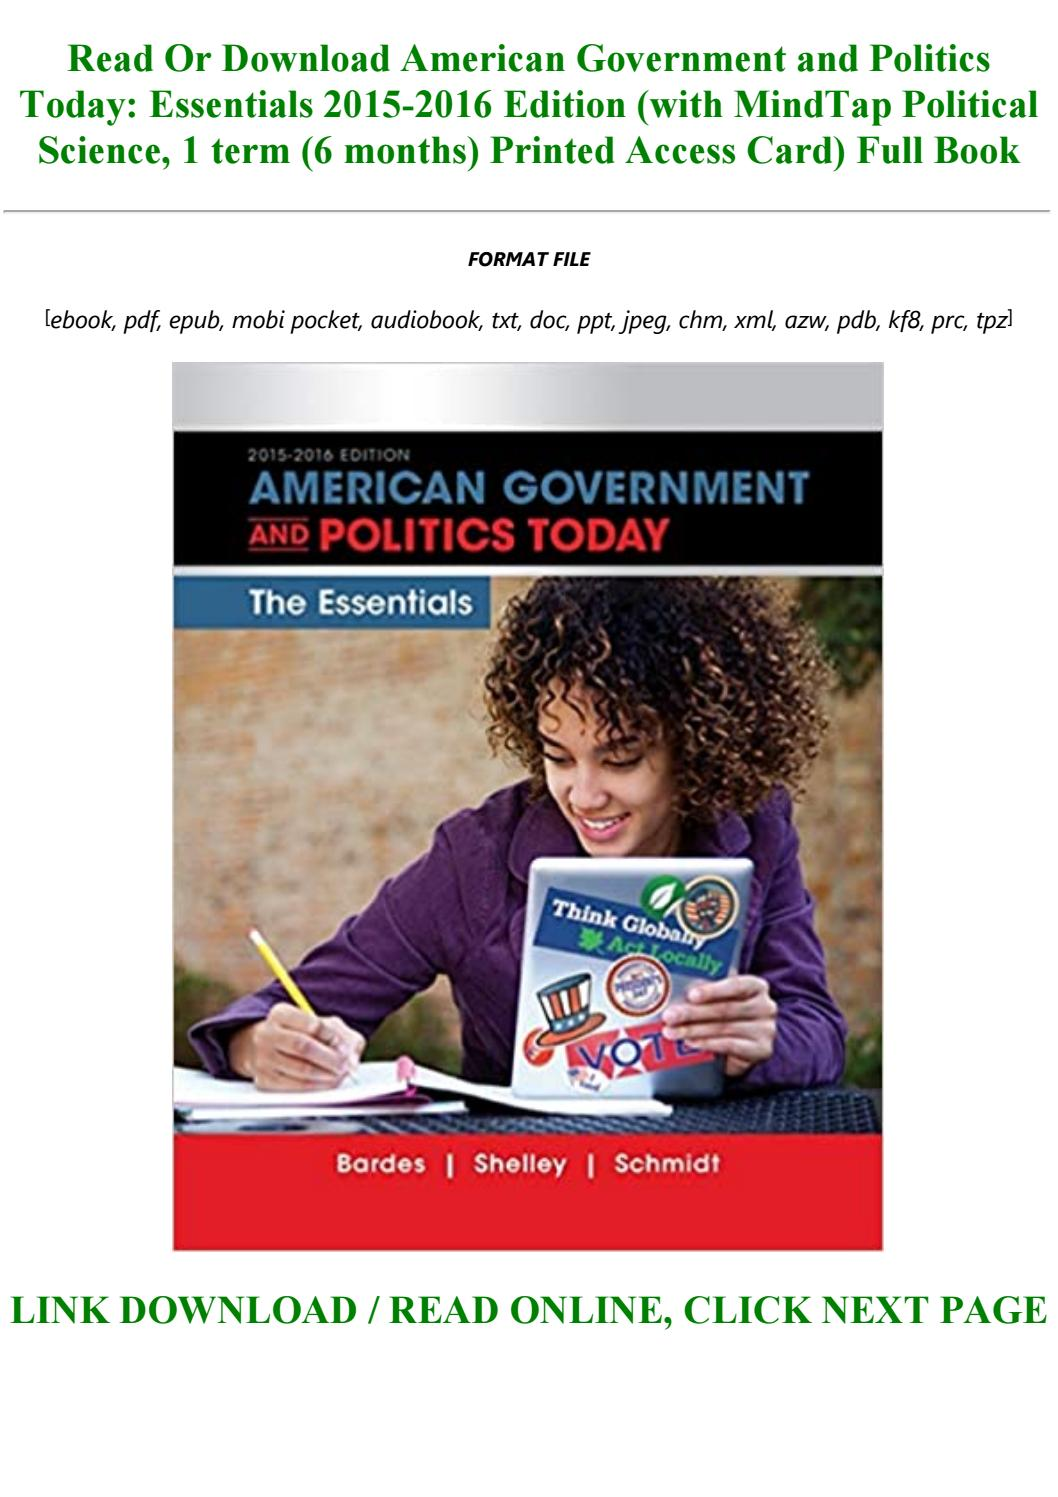 american government and politics today brief edition pdf download